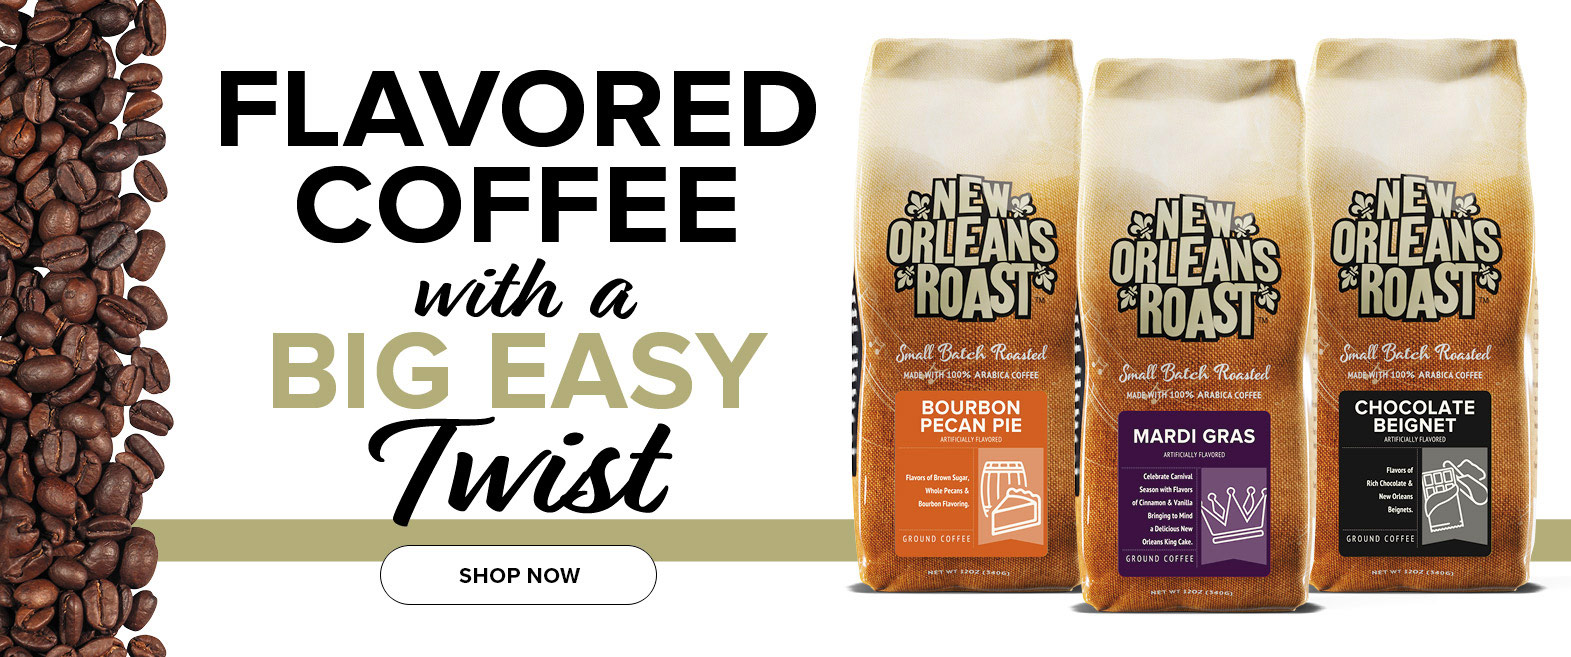 Flavored Coffee with a Big Easy Twist